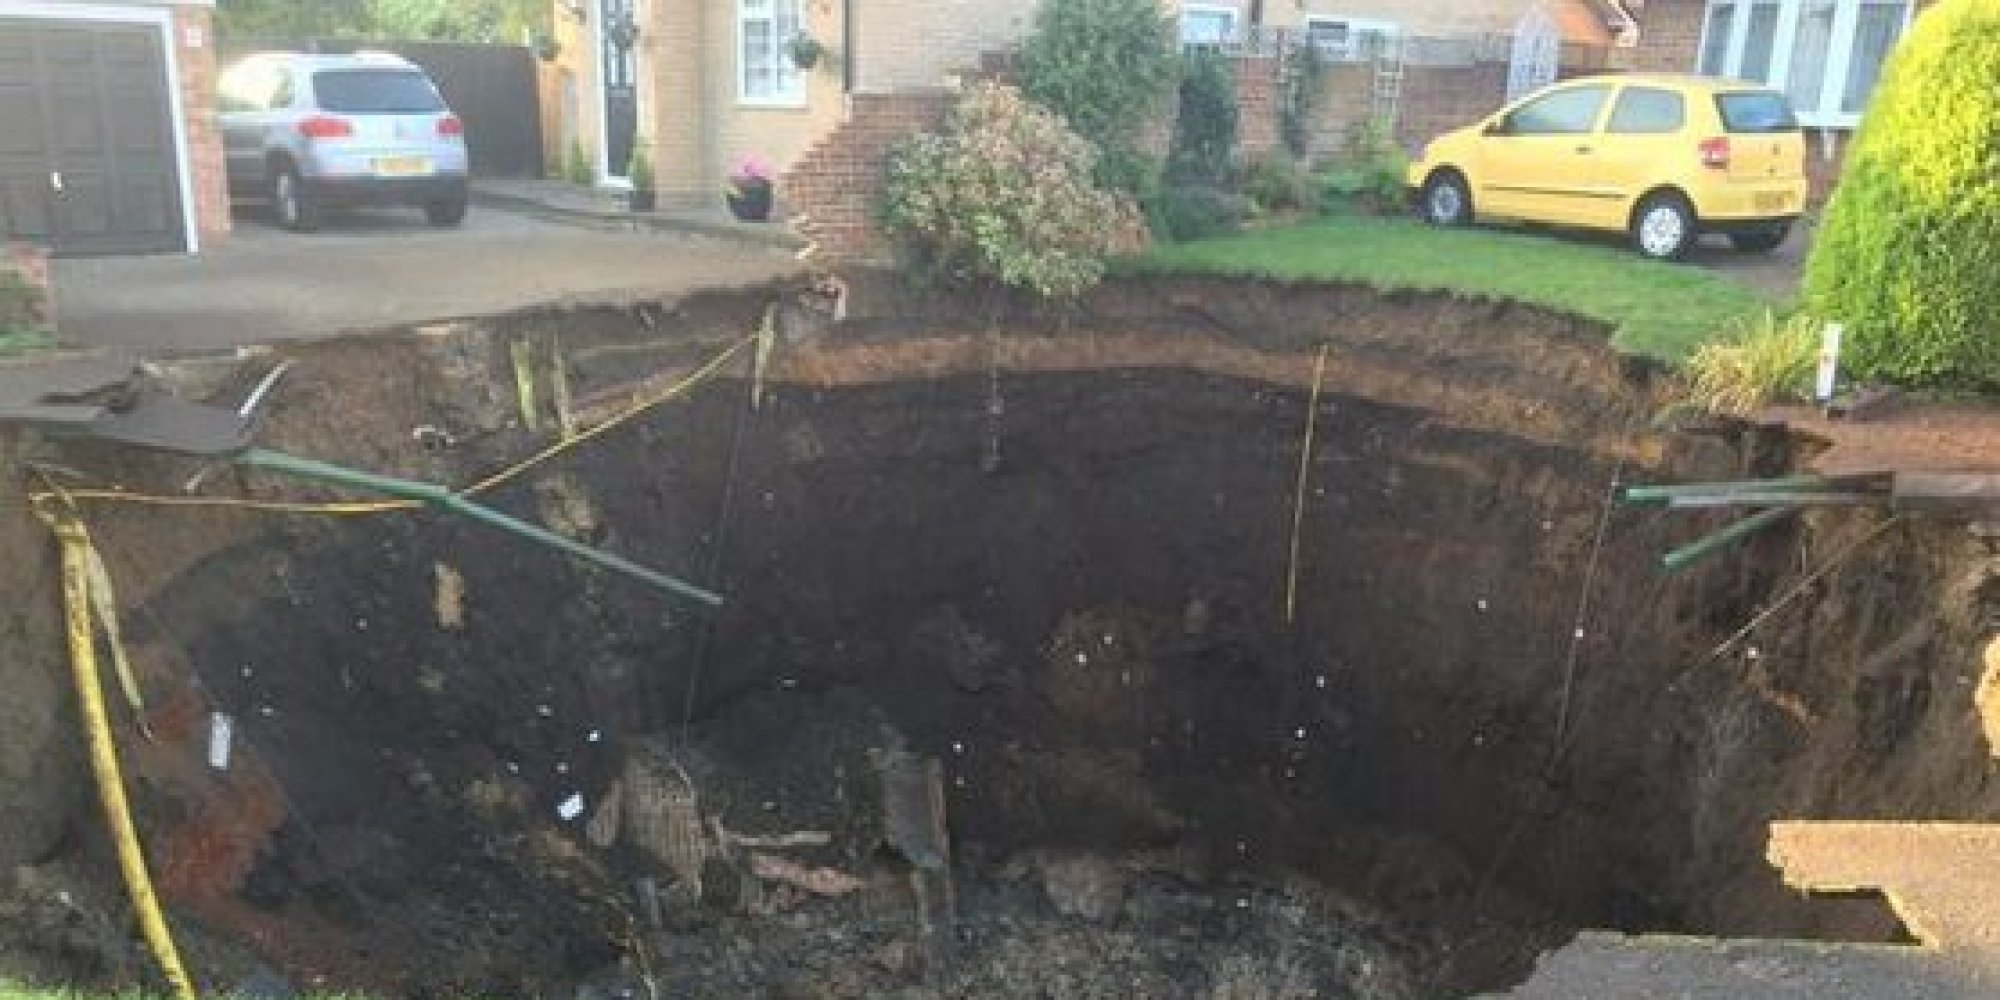 65ft Wide Sinkhole Opens In St Albans | HuffPost UK